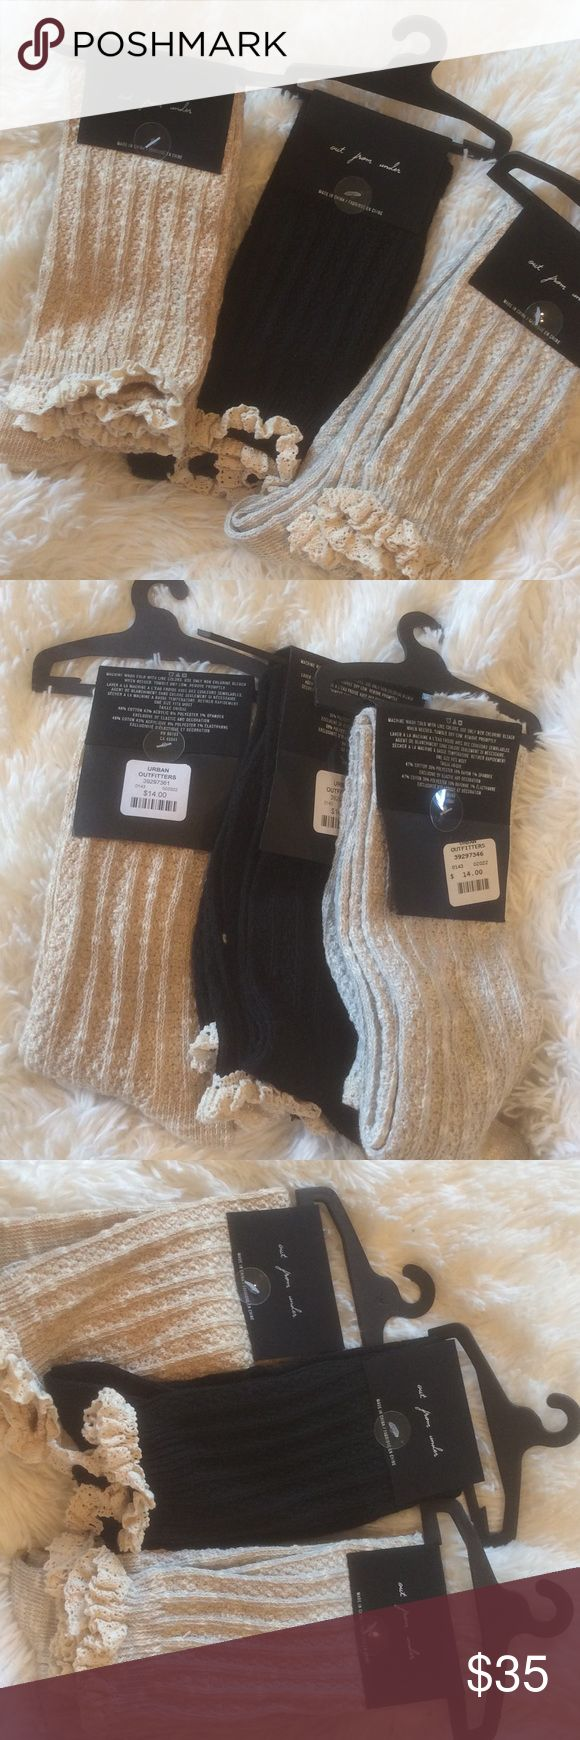 3 Urban Outfitters Out From Under Knee High Stocks Three pairs of Out From Under Knee High Socks from Urban Outfitters. Three colors available. Please specify your choice. Black/Tan/Gray. Urban Outfitters Accessories Hosiery & Socks